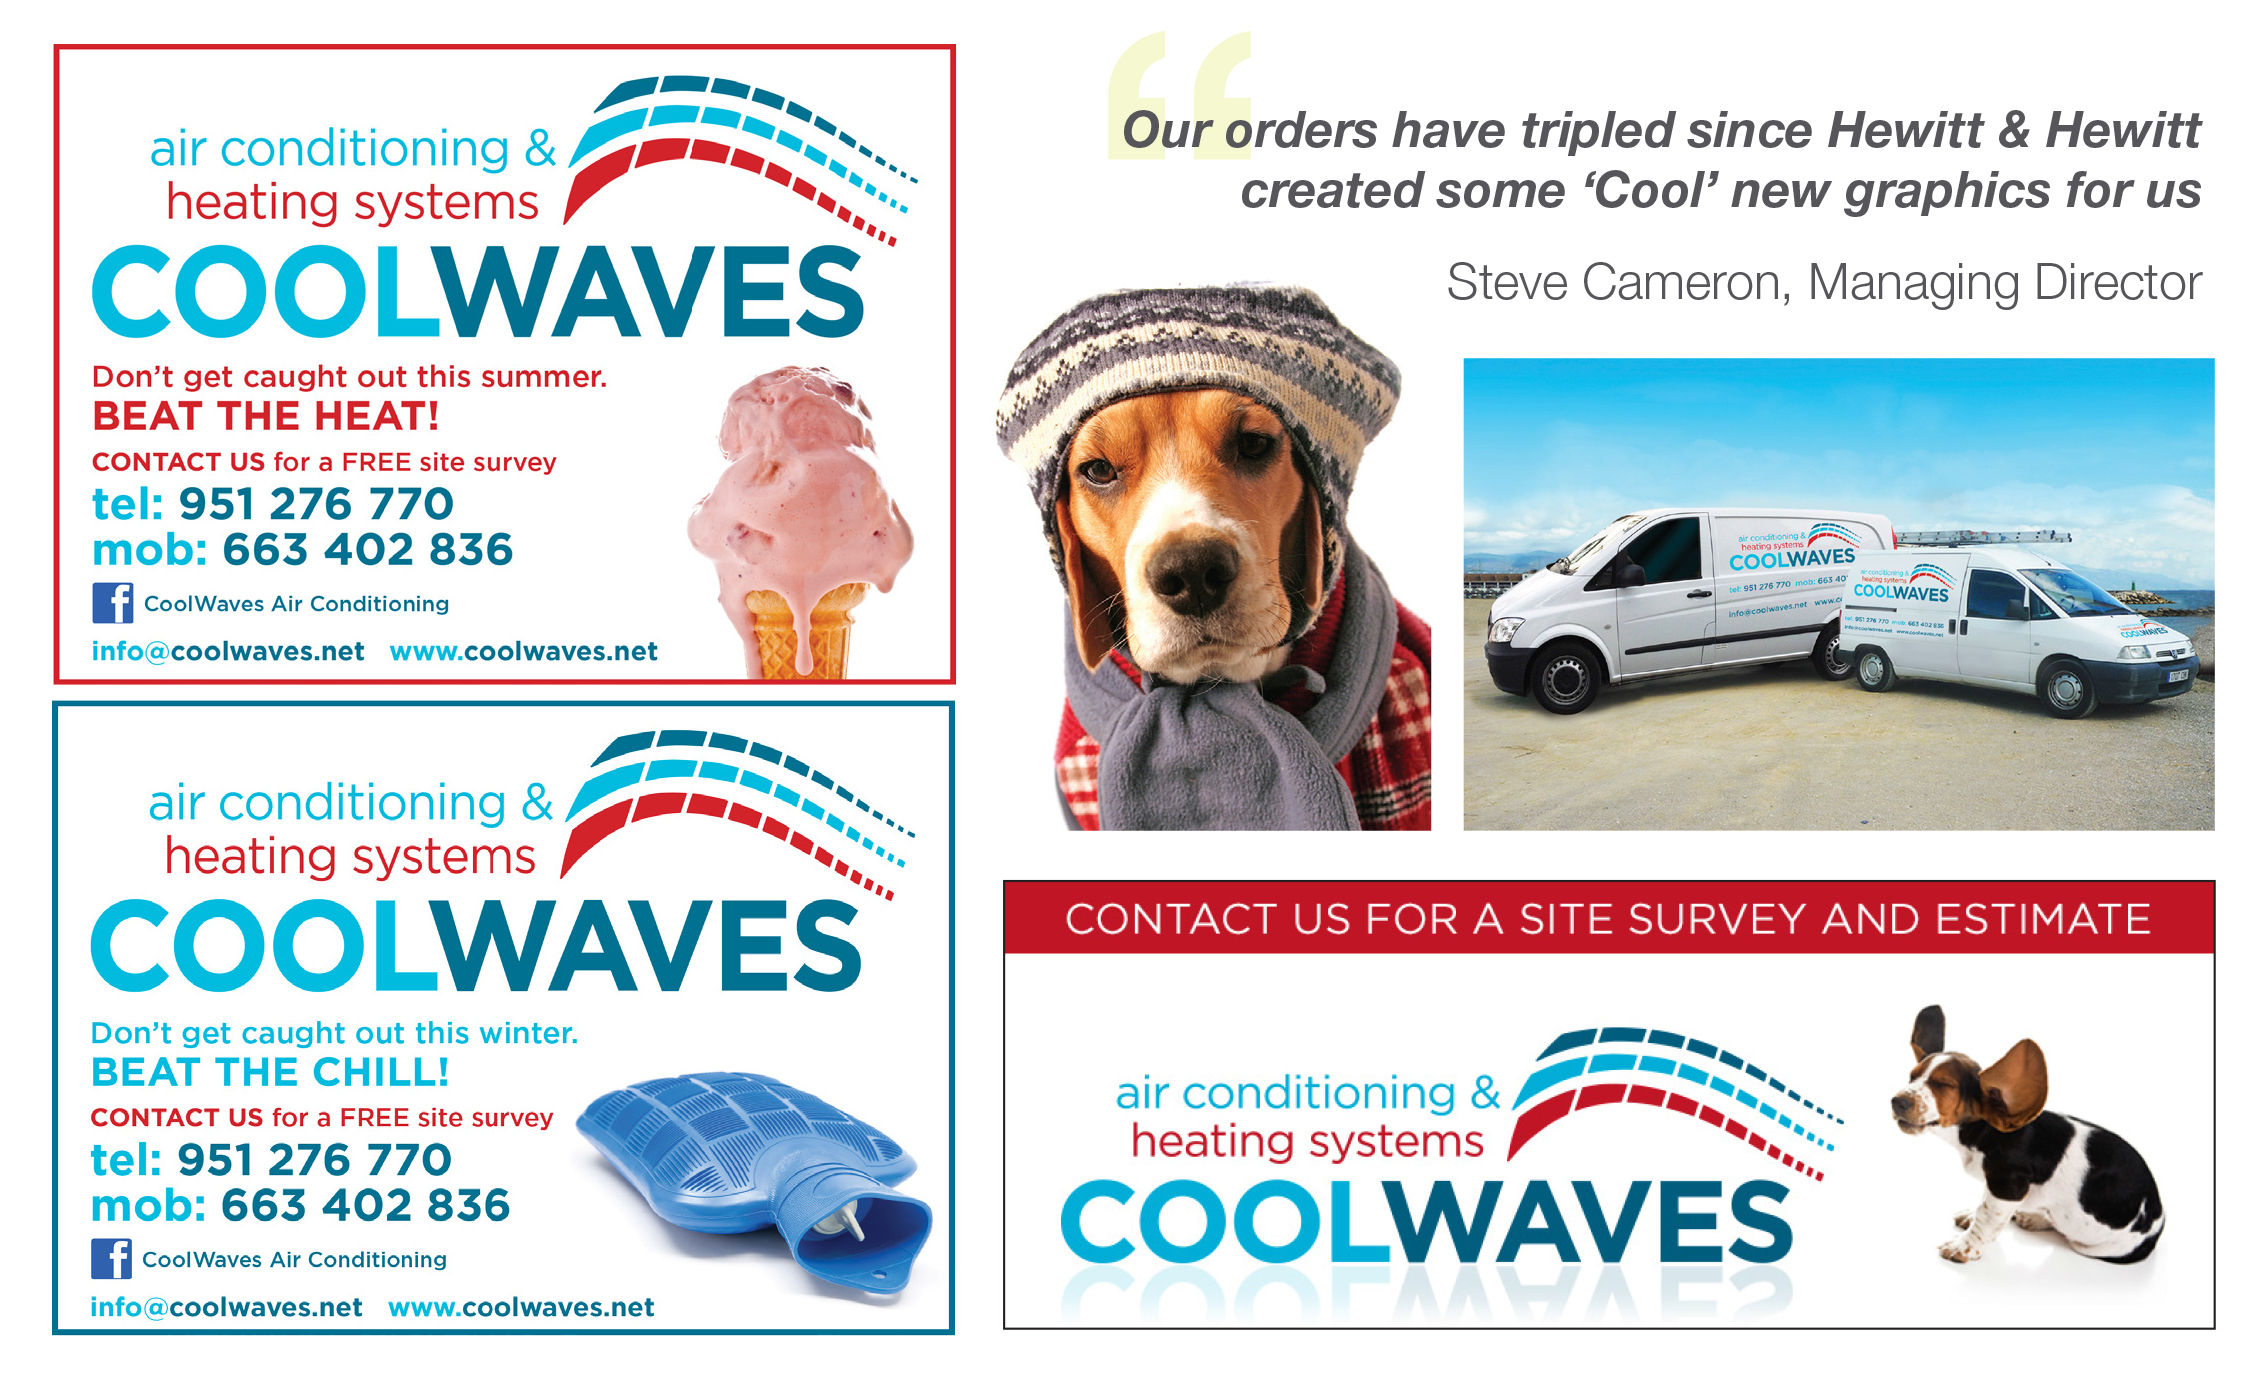 Cool Waves Air Conditioning